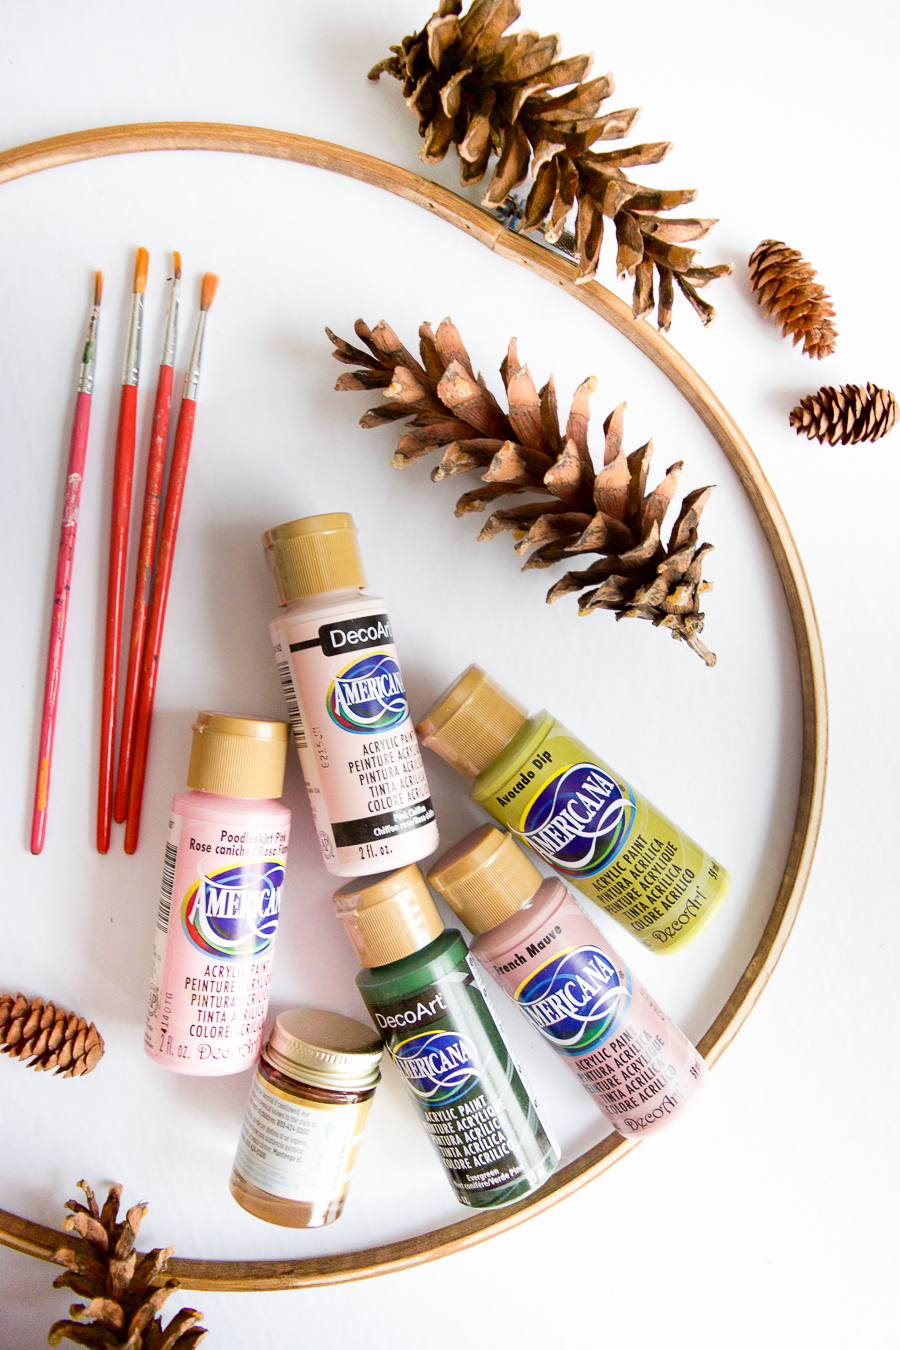 I painted pinecones in beautiful on-trend hues, and gluing them to a wreath - easy as 1-2-3!